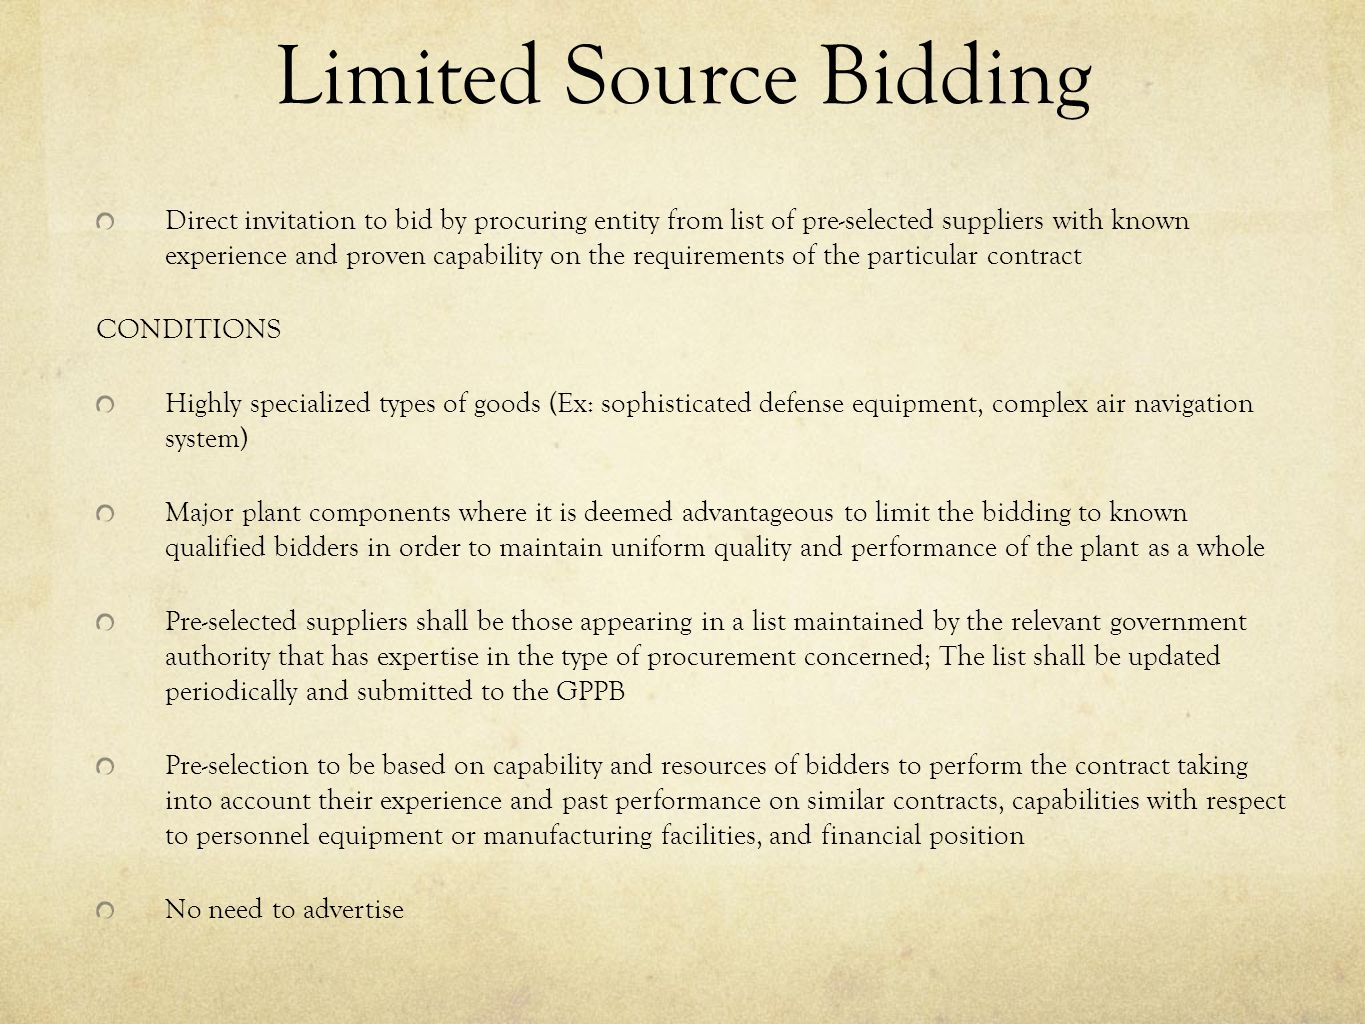 Limited Source Bidding